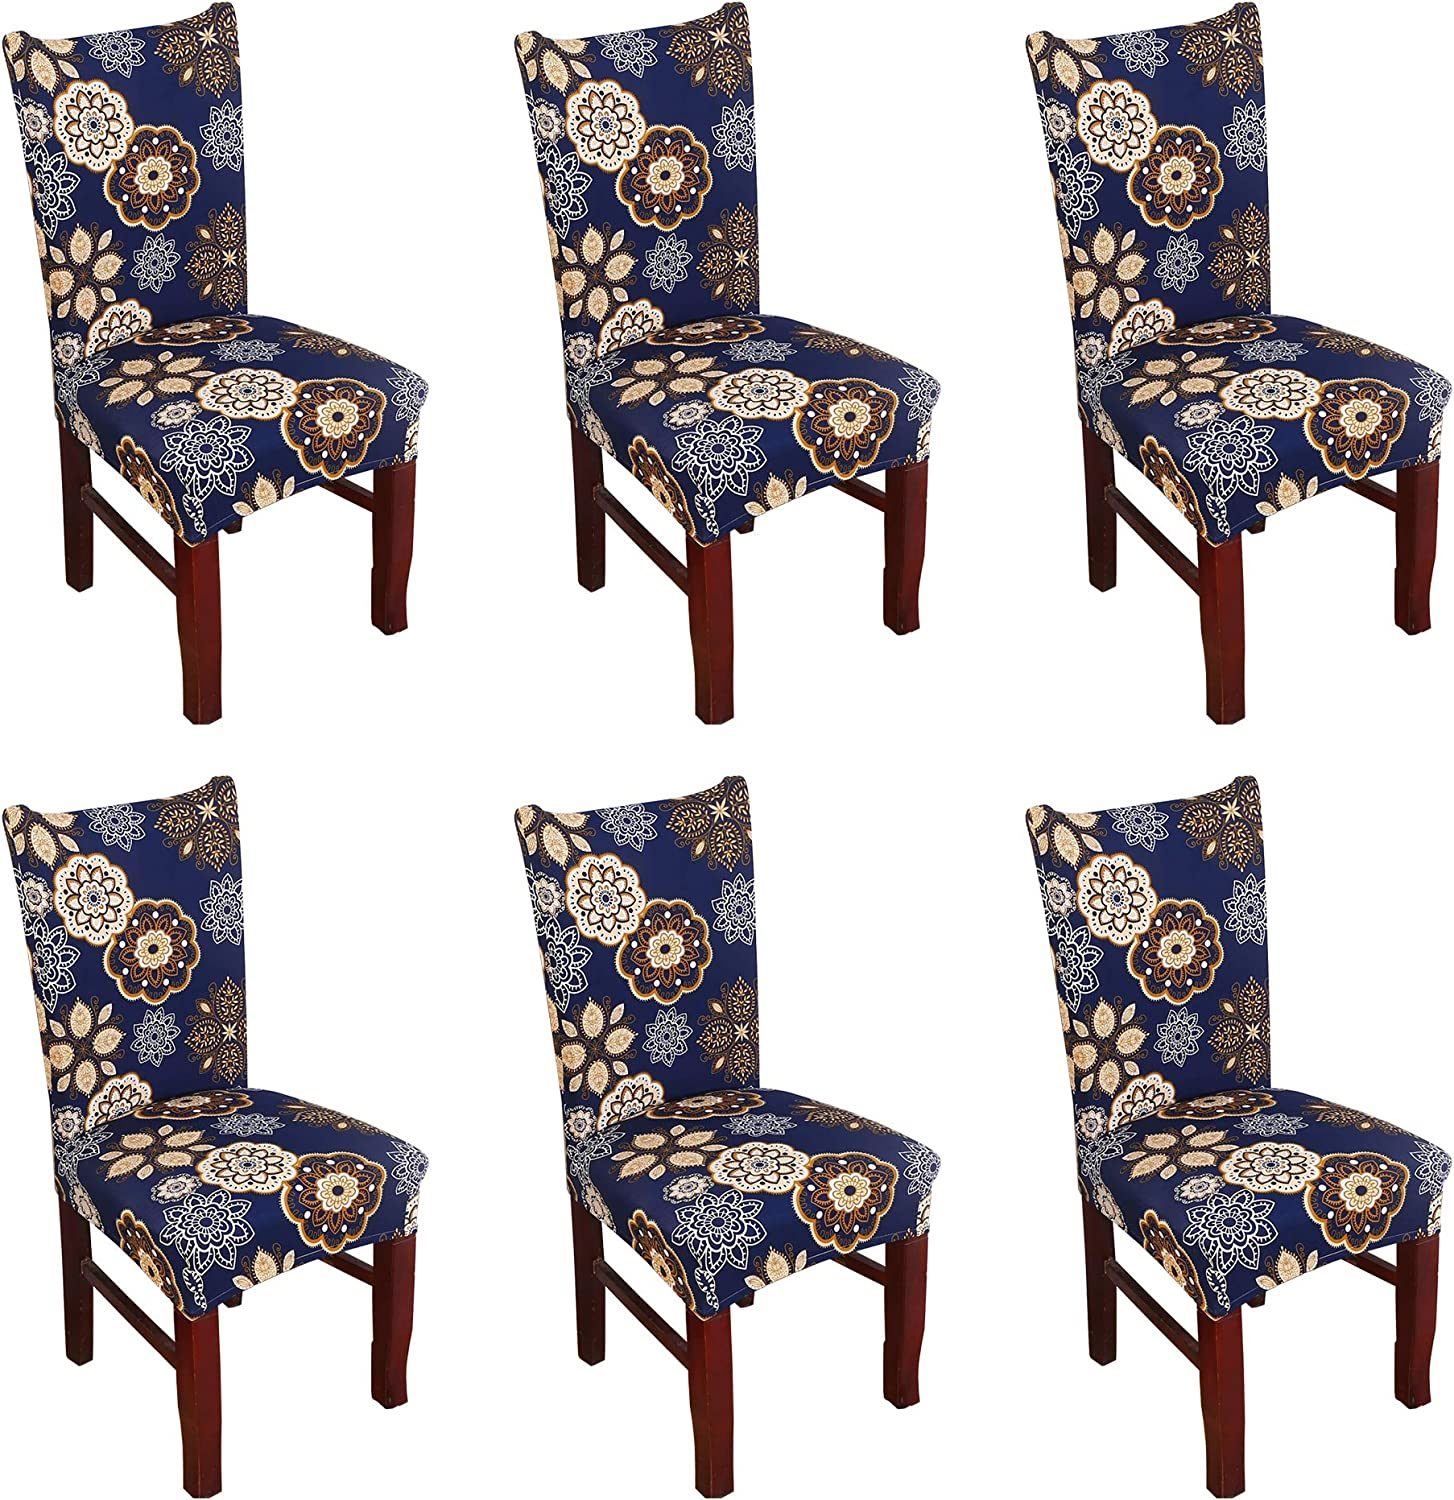 Argstar 6 Pack Chair Covers, Stretch Armless Chair Slipcover for Dining Room Seat Cushion, Spandex Kitchen Parson Chair Protector Cover, Removable & Washable, Navy Blue Flower Design